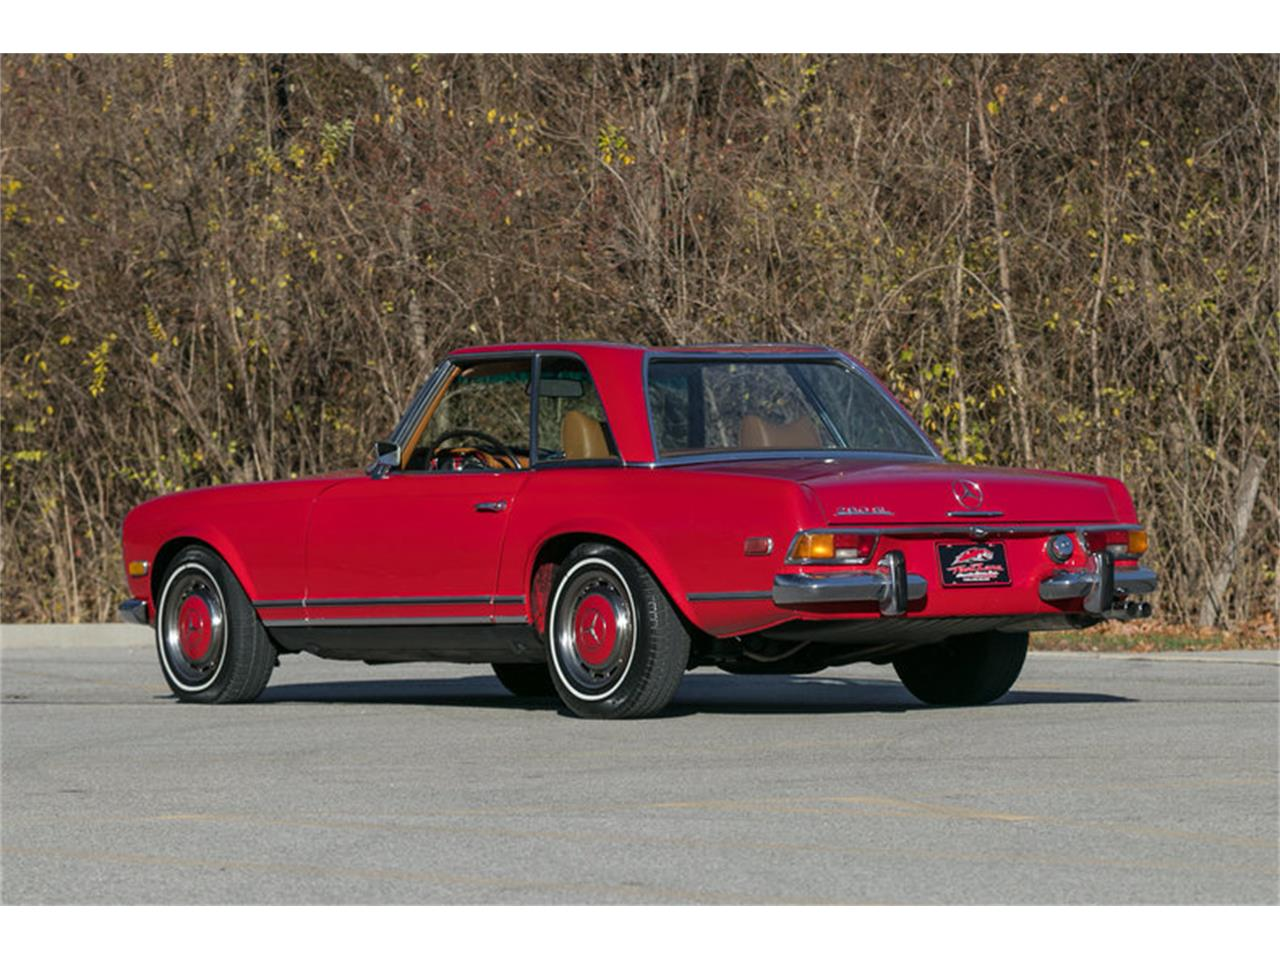 Large Picture of Classic '71 Mercedes-Benz 280SL located in St. Charles Missouri Offered by Fast Lane Classic Cars Inc. - MFTR